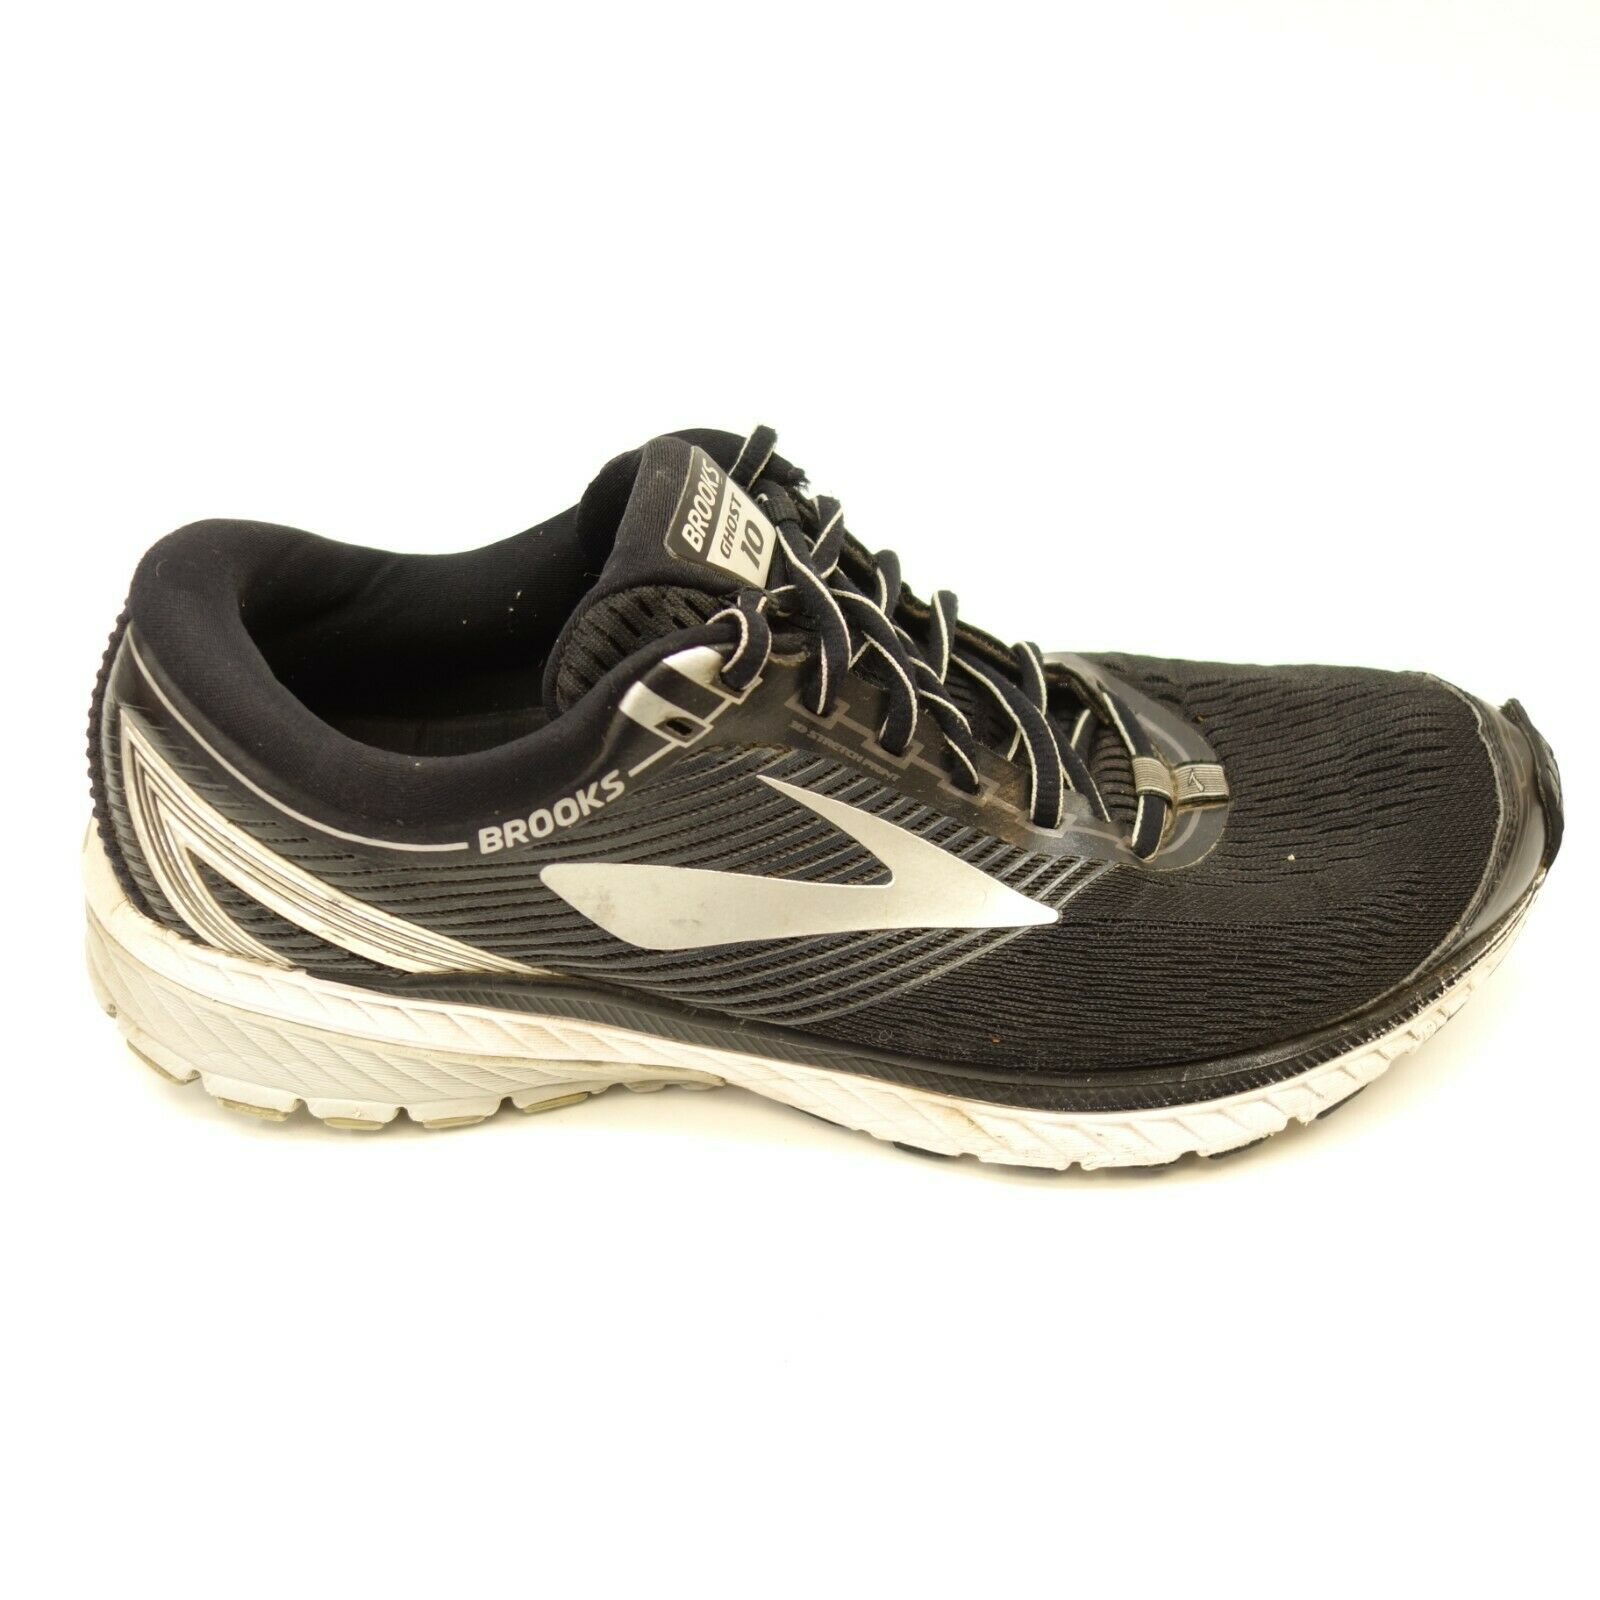 Brooks Mens Ghost 10 Road-Running DNA Loft Trail Running Athletic shoes Sz 11